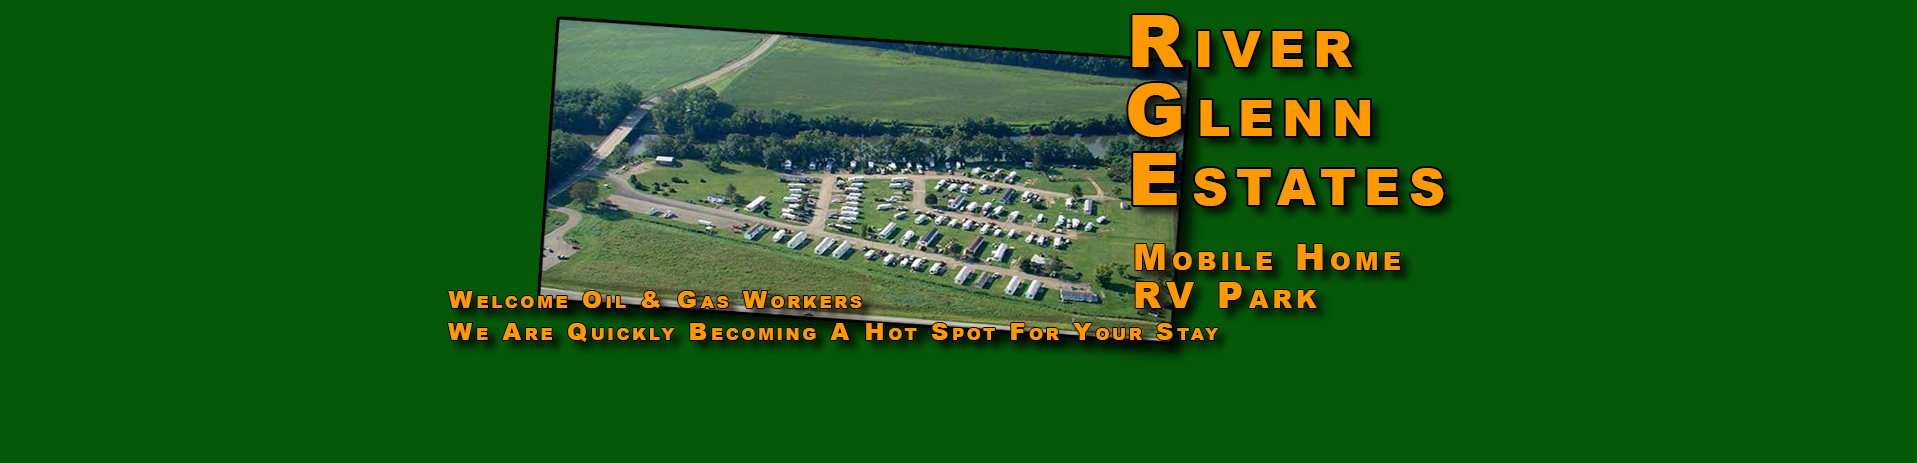 RV Mobile Home Park Campground River Glenn Estates Ohio